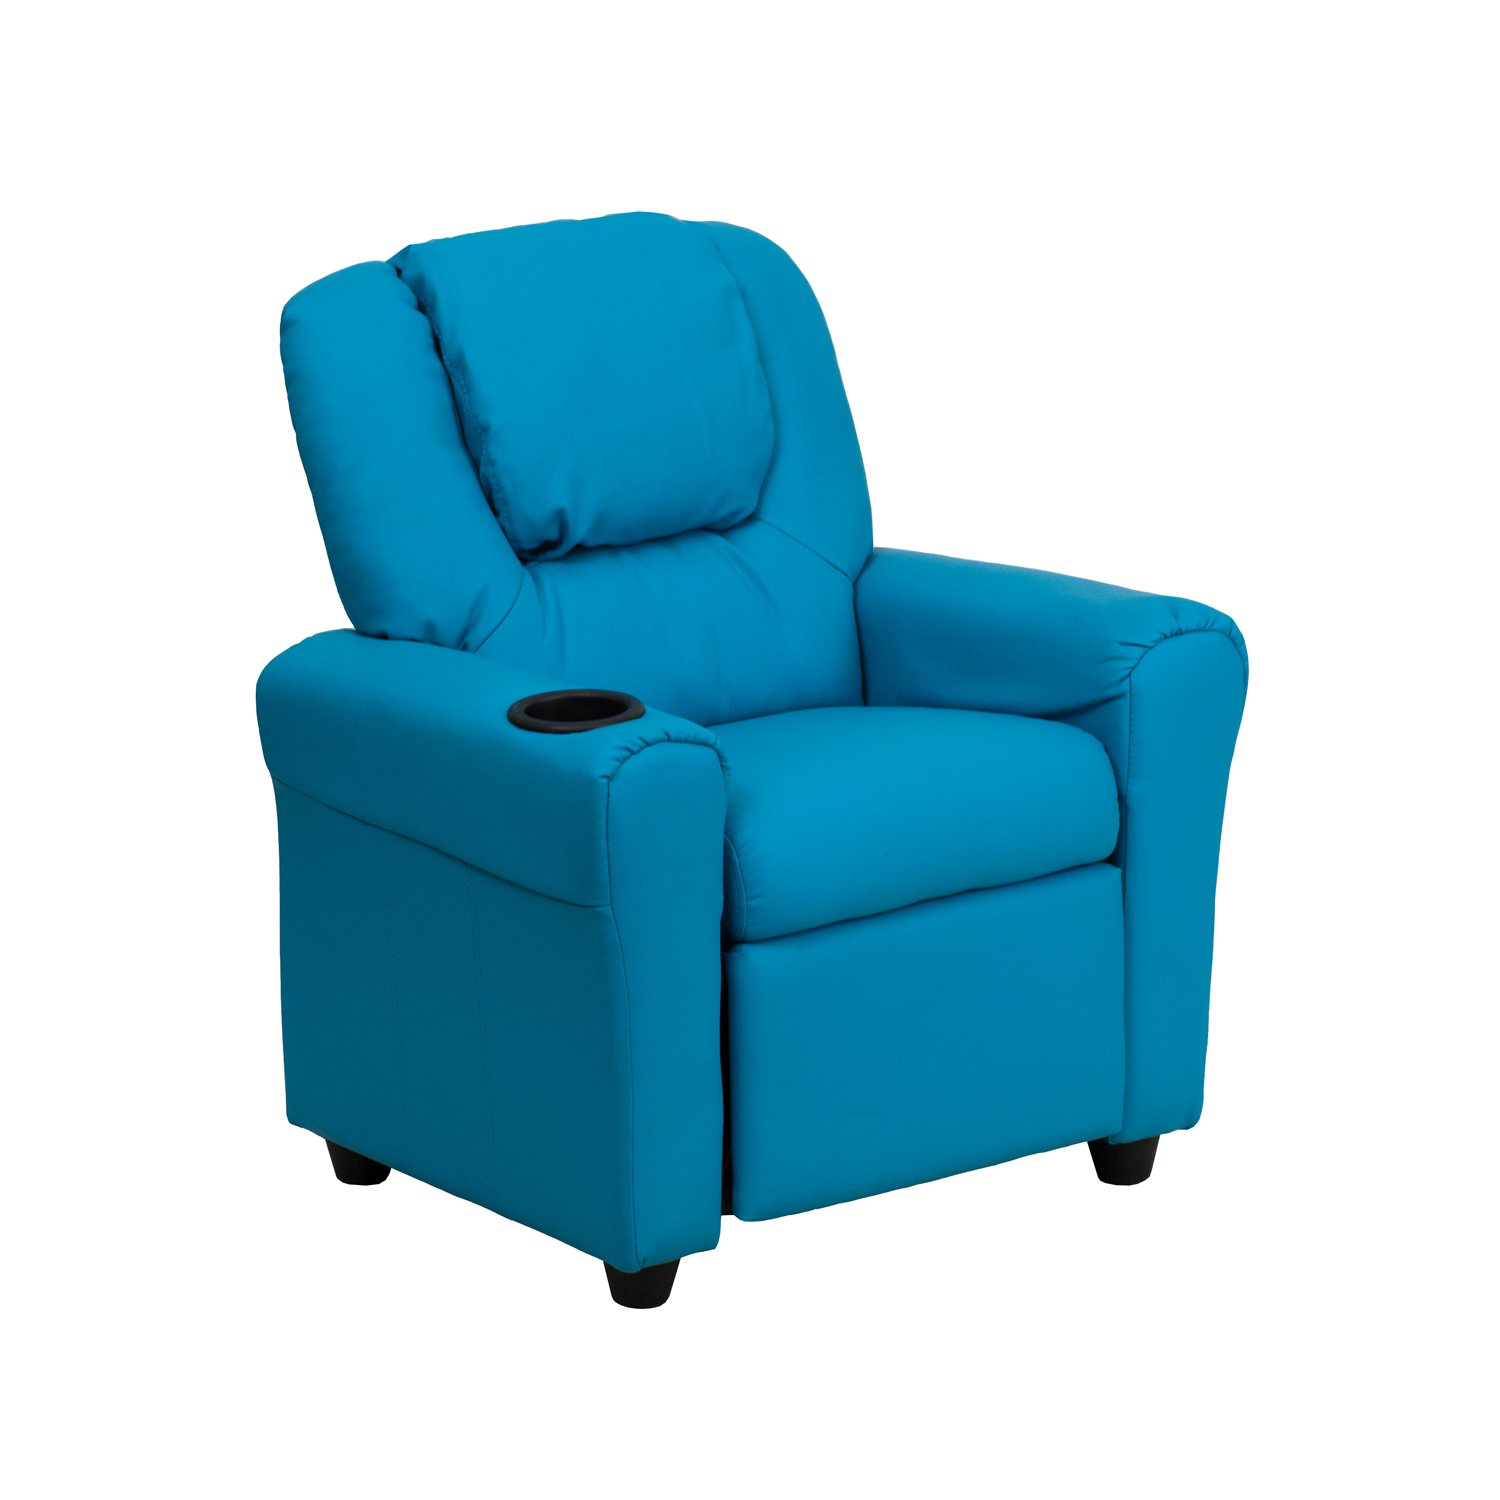 Offex OF-DG-ULT-KID-TURQ-GG Contemporary Turquoise Vinyl Kids Recliner with Cup Holder and Headrest